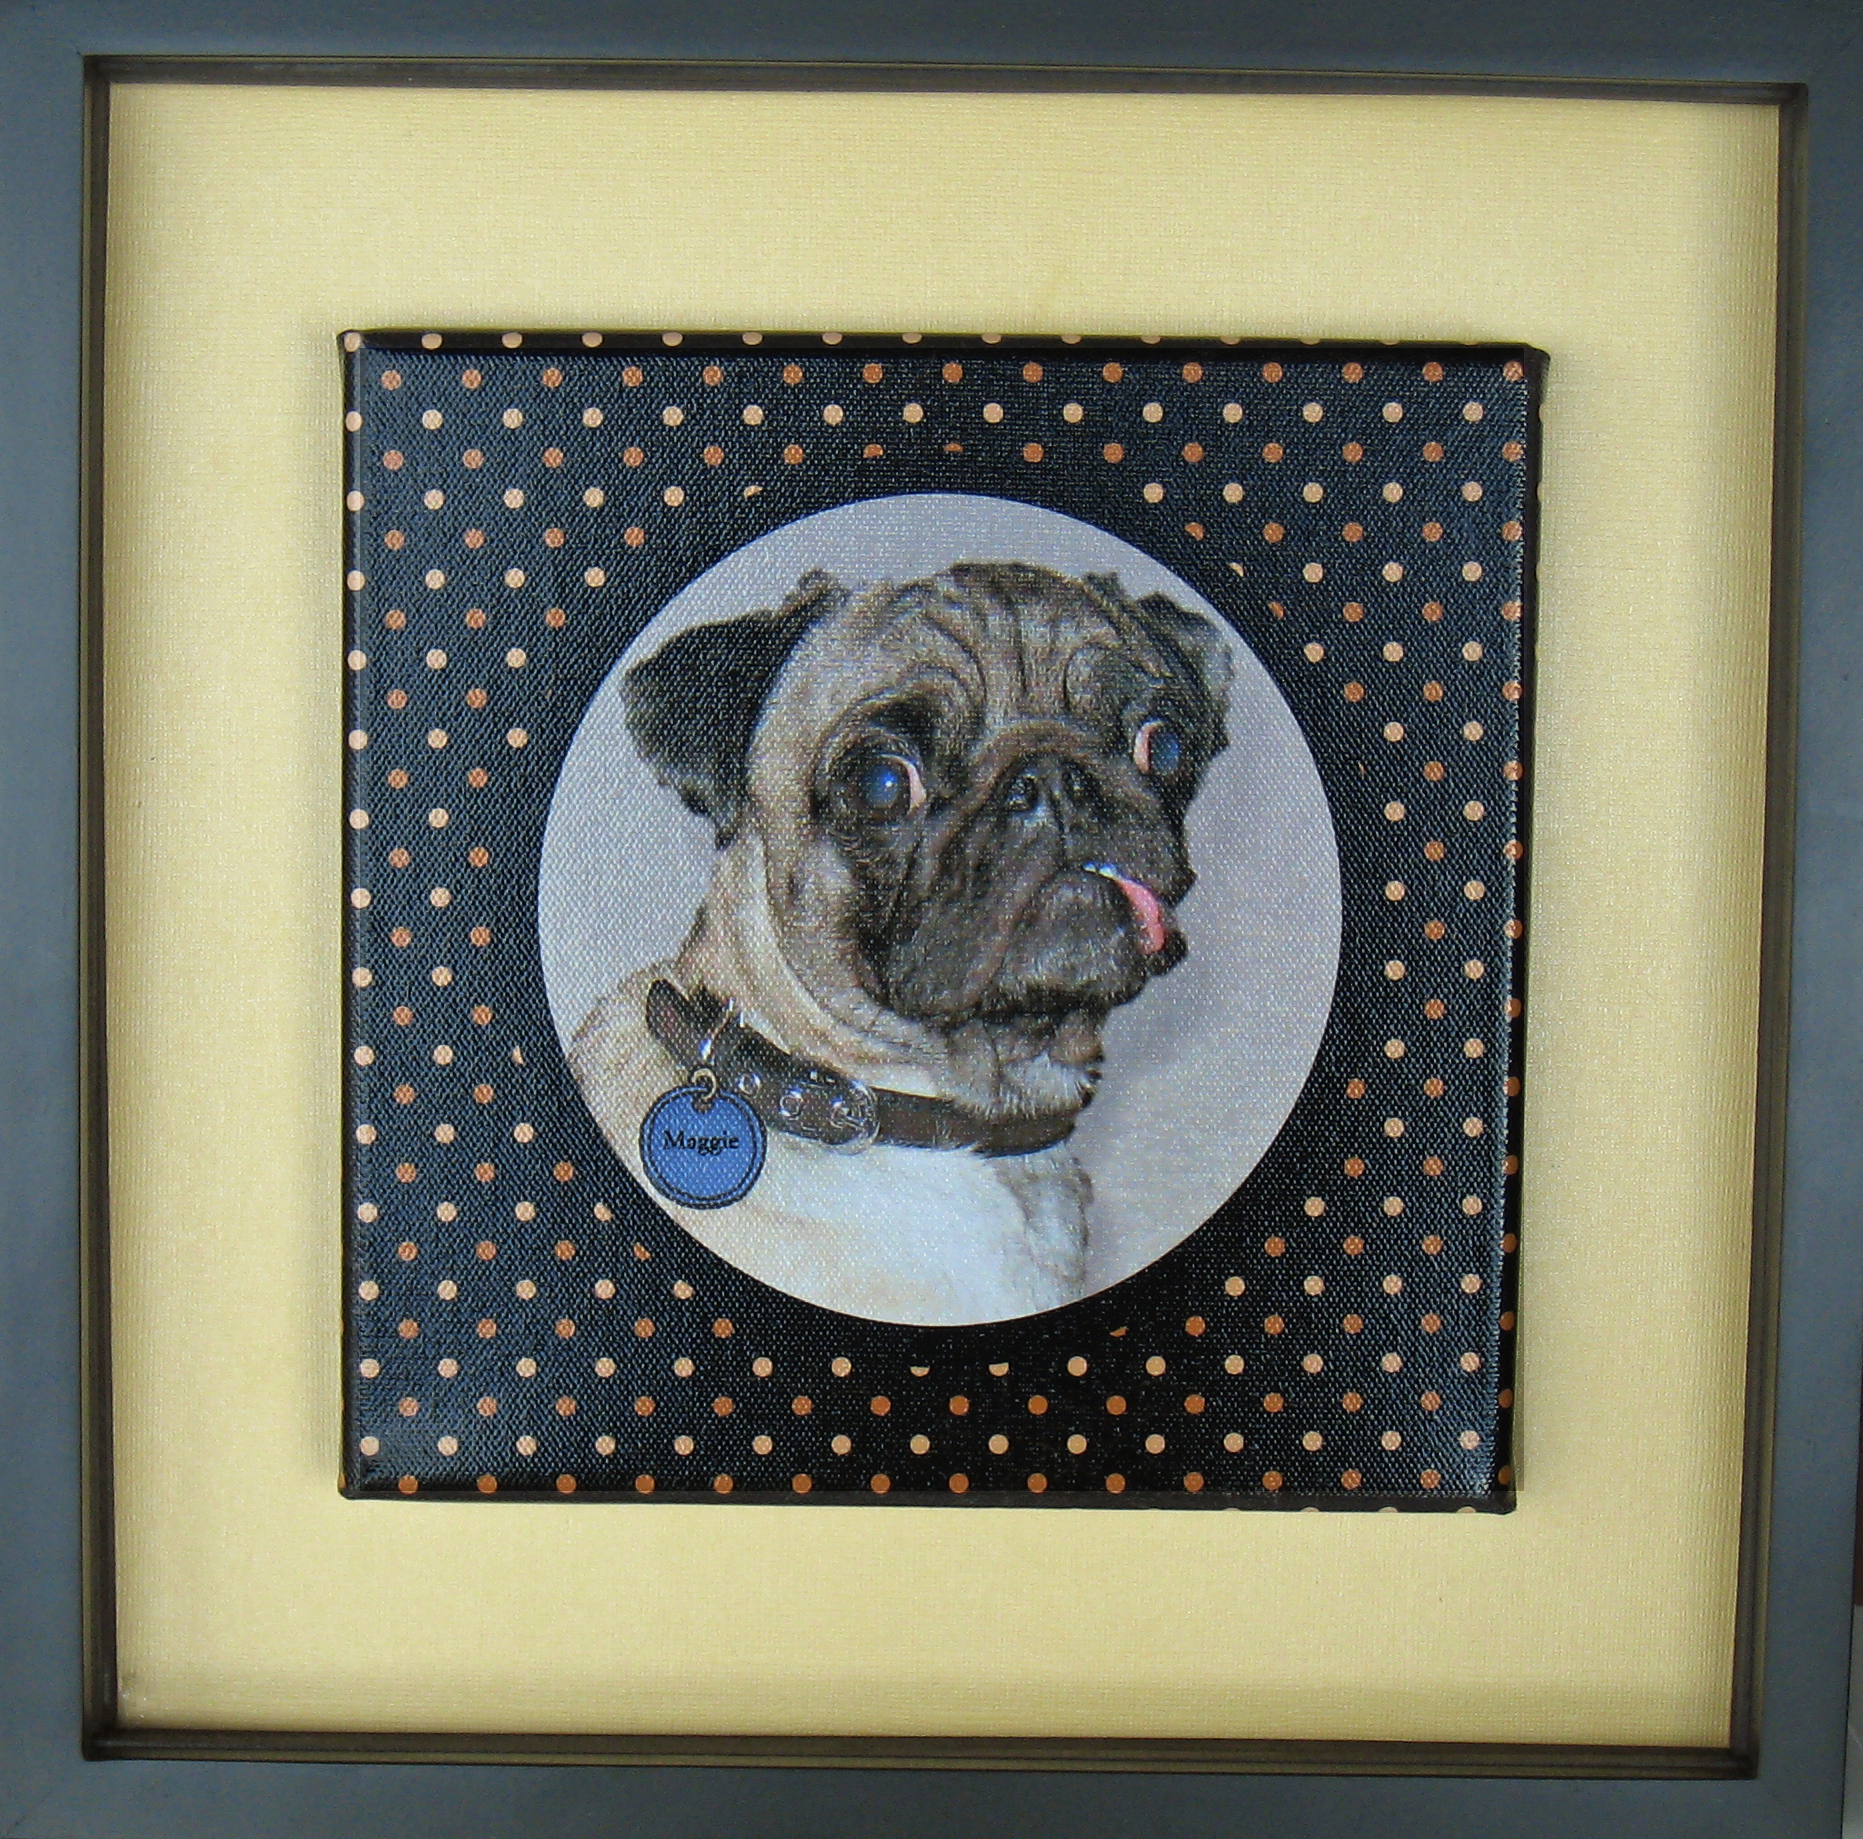 Shows the final framed canvas of Maggie.